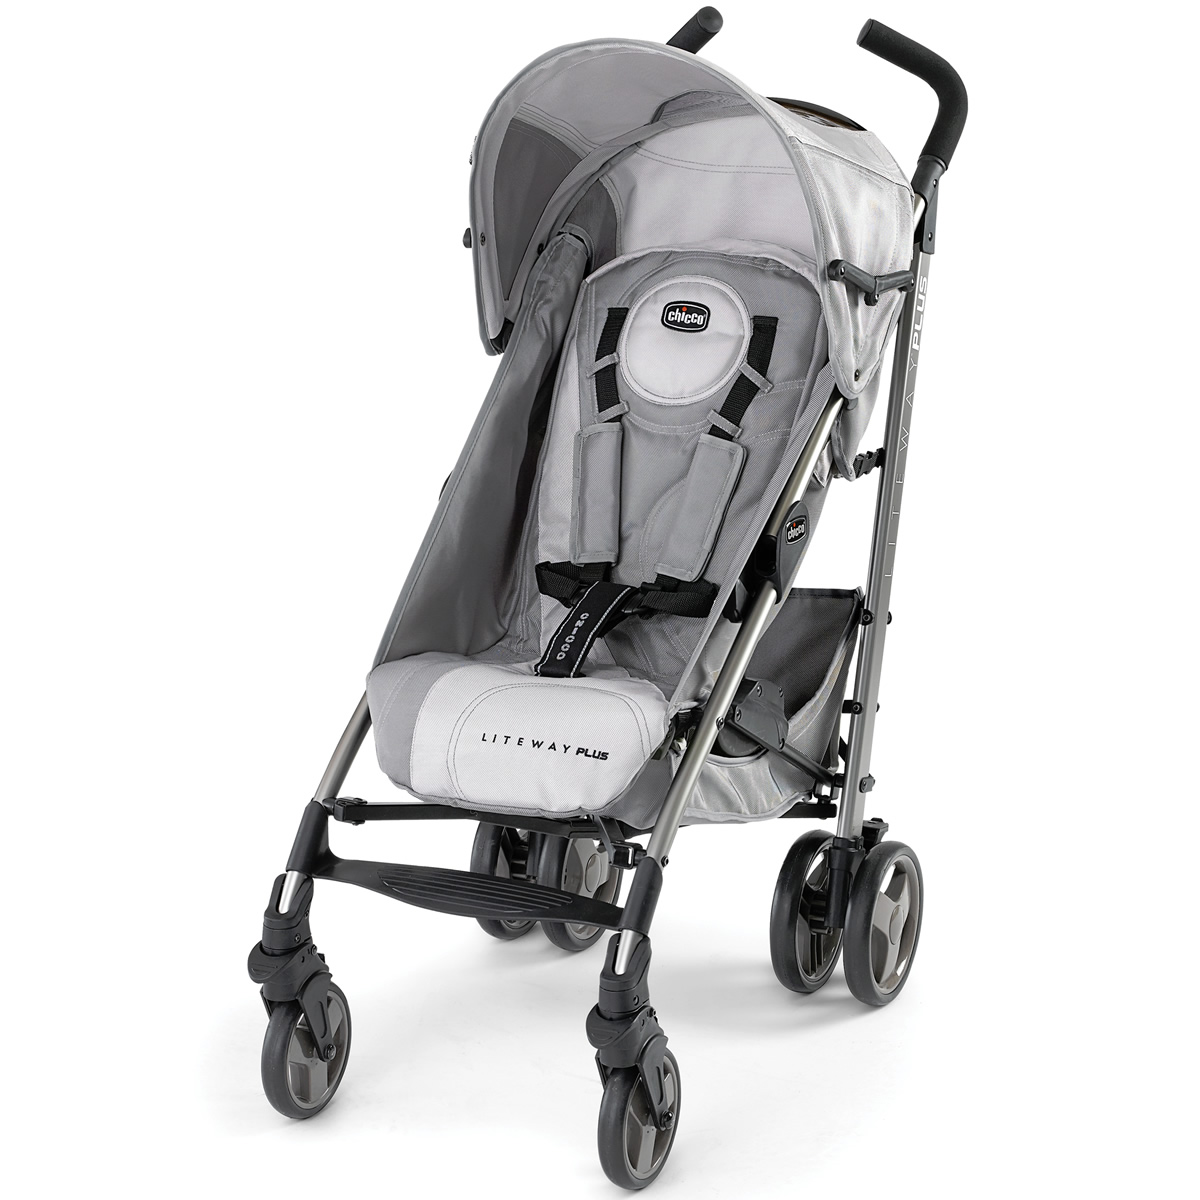 chicco liteway plus stroller silver. Black Bedroom Furniture Sets. Home Design Ideas